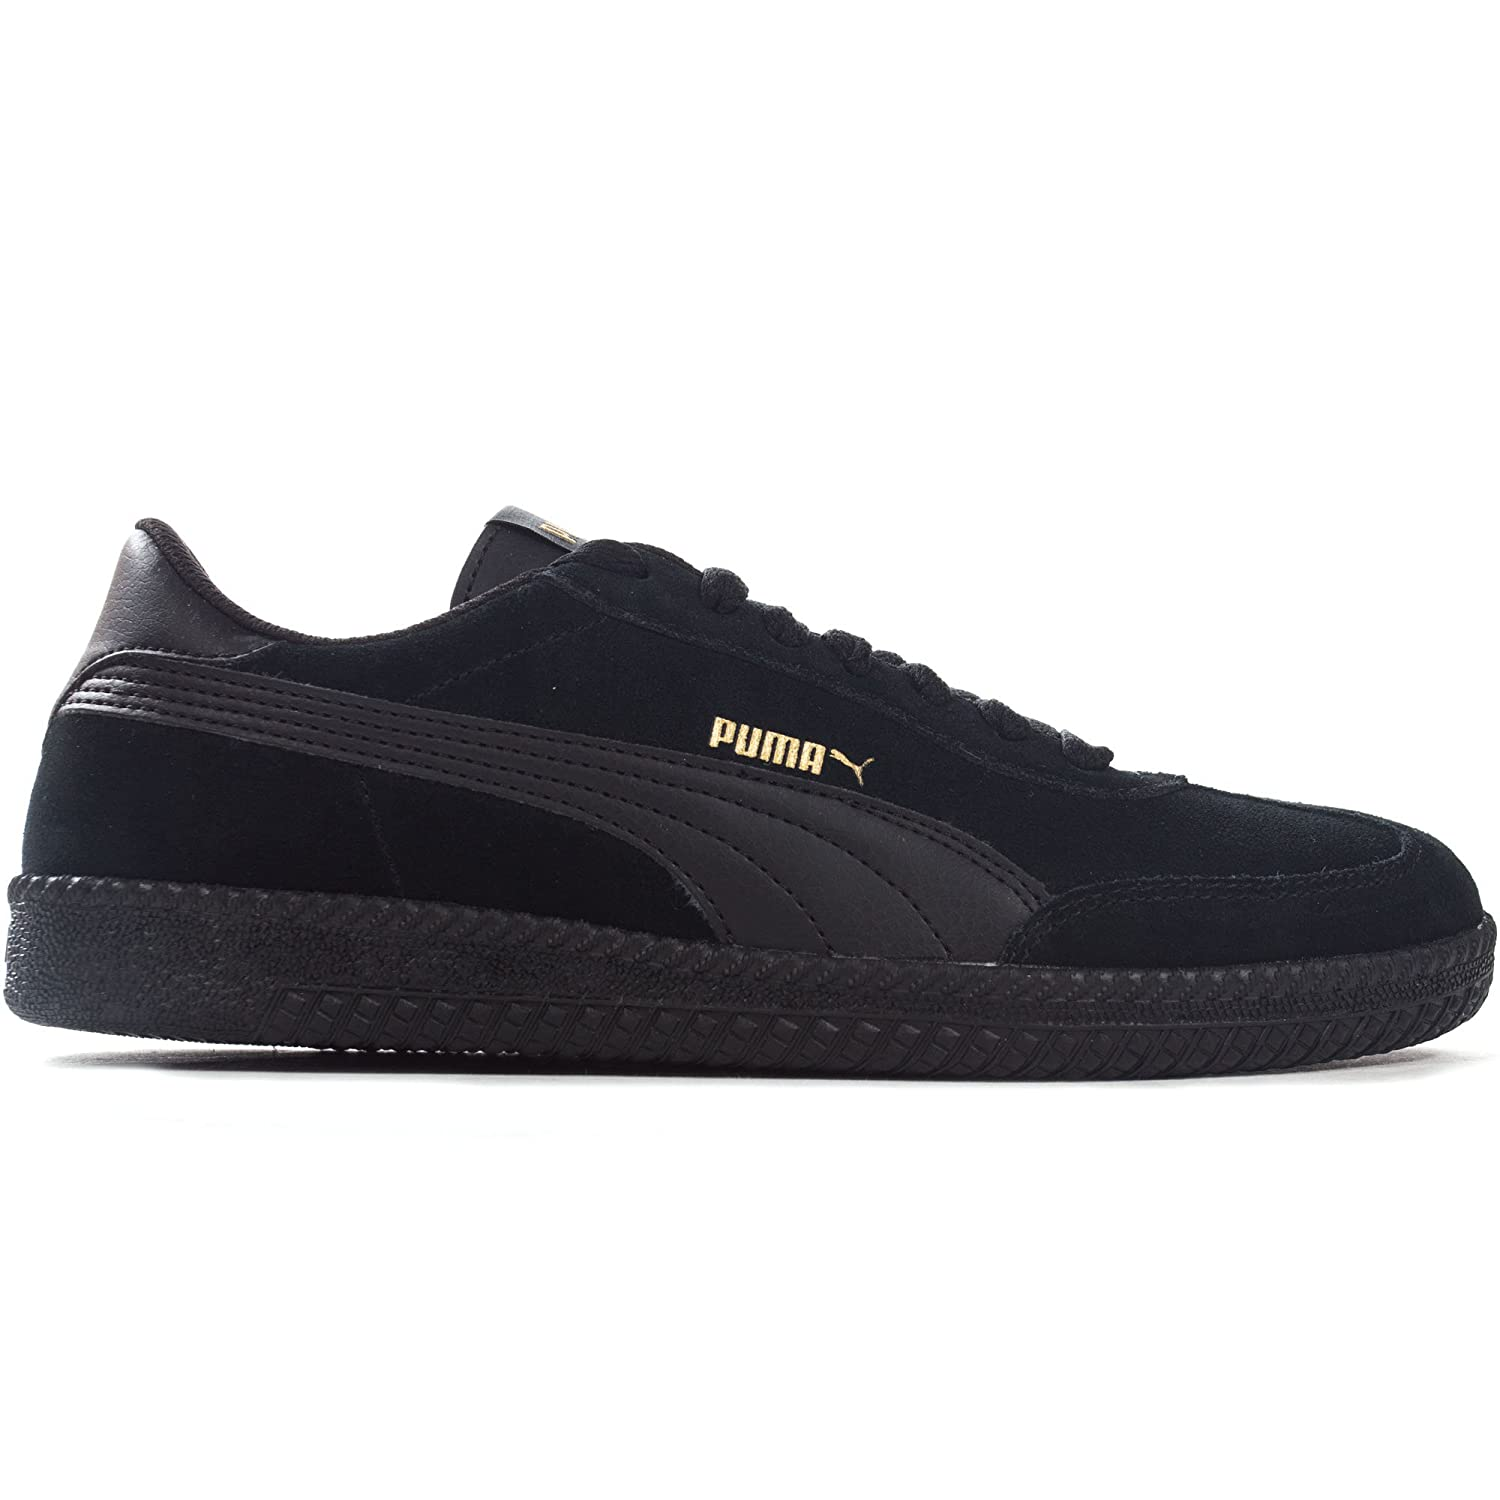 reputable site 99ddd c82b2 Puma Unisex Adults' Astro Cup Fitness Shoes